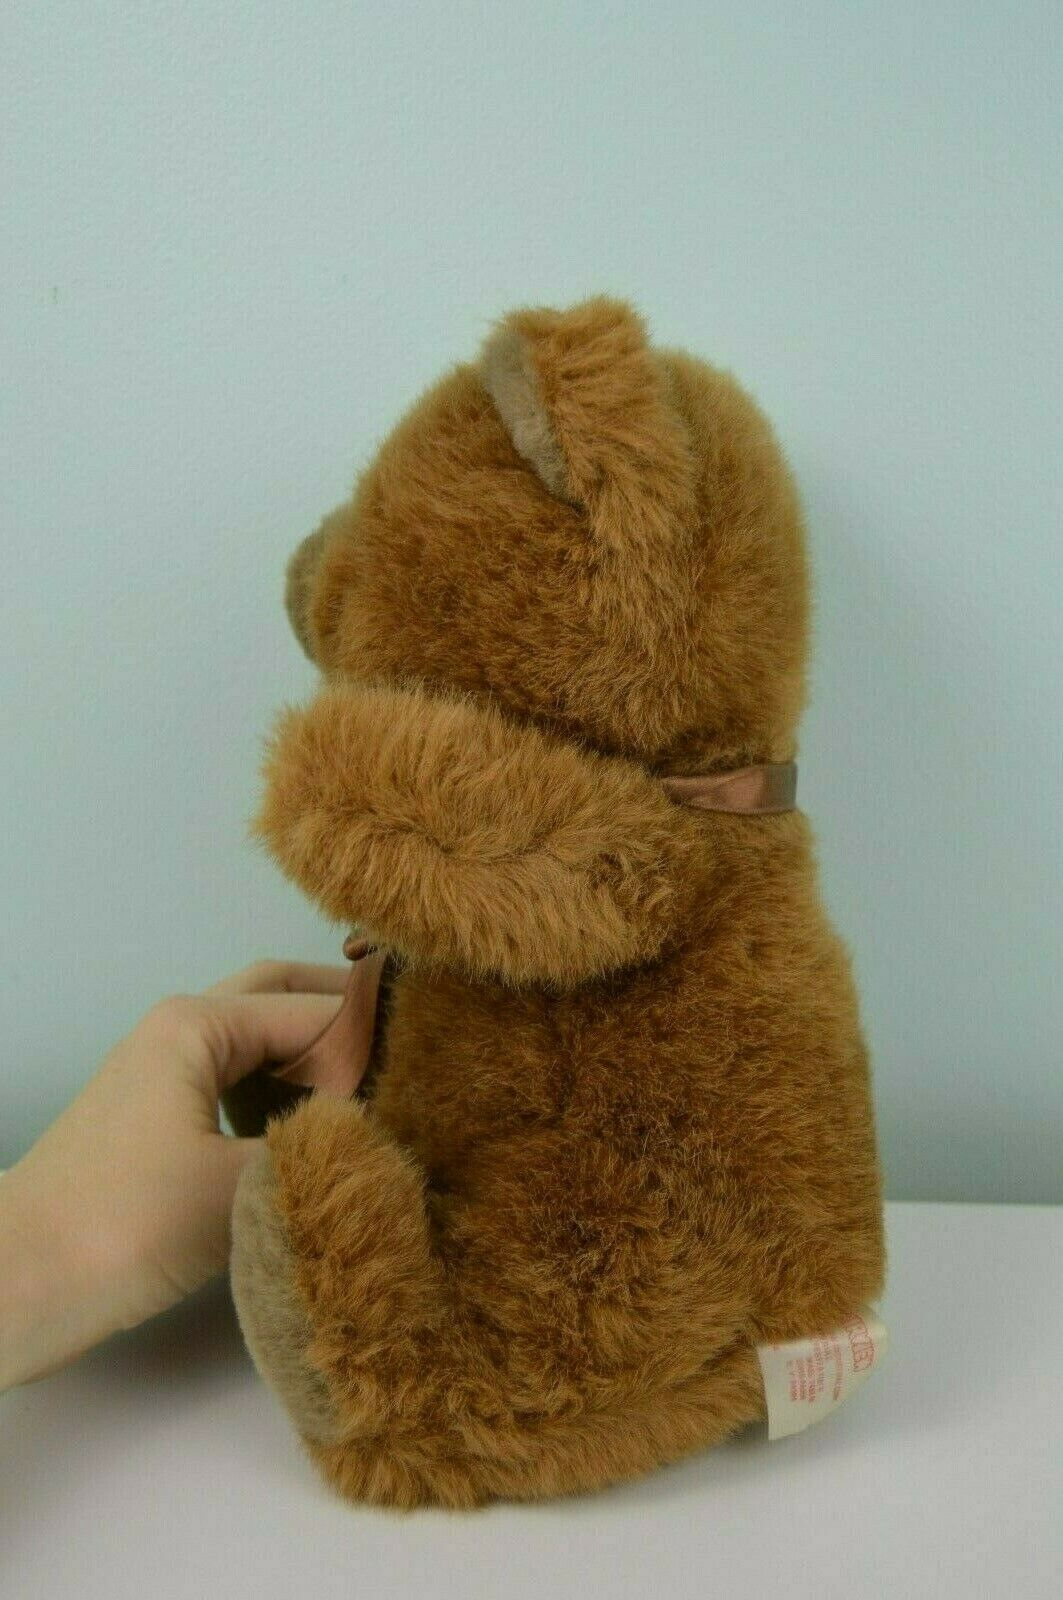 Vintage Fairview Teddy orso Plush Stuffed Animal giocattolo Marroneee Bow Bow Bow 10  1990 9a9323